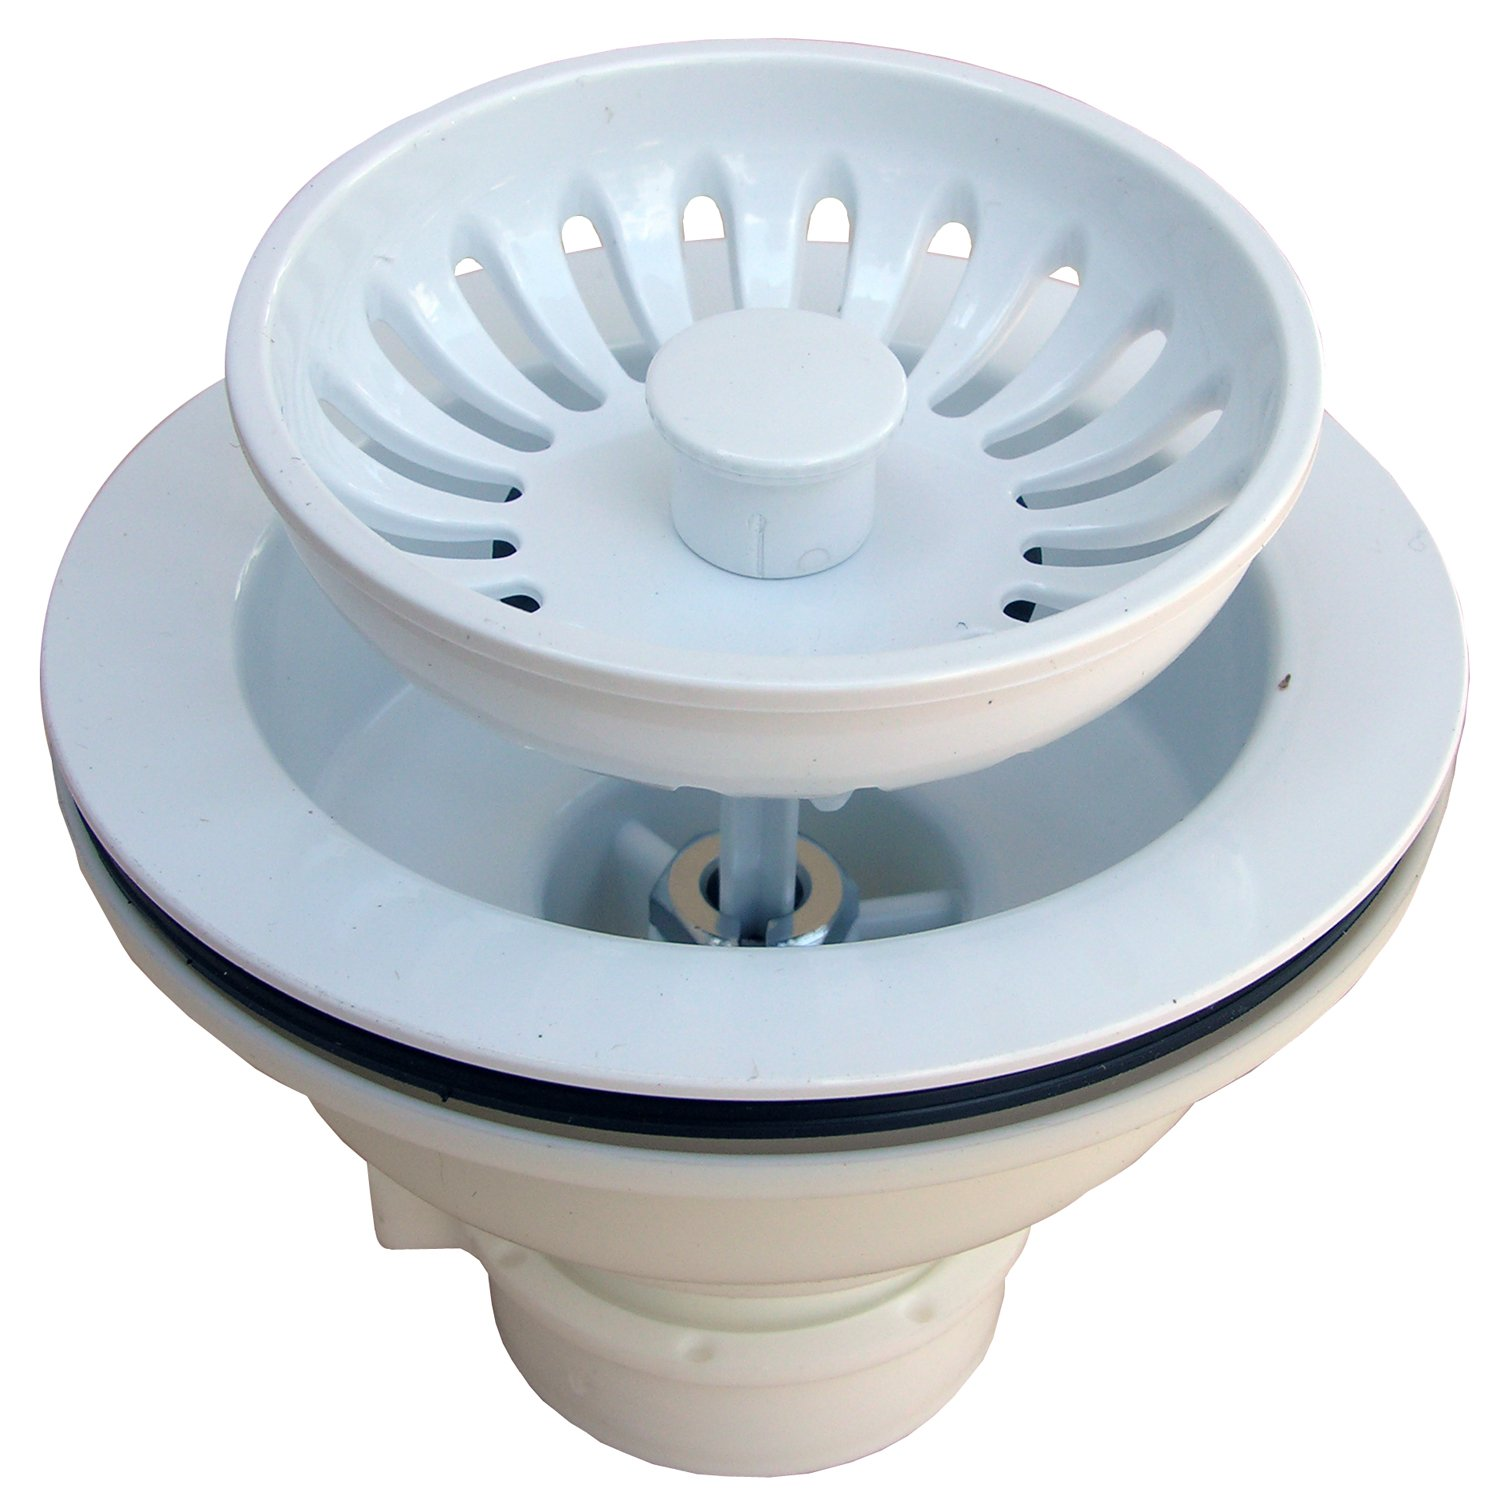 LASCO 03 1059W Heavy Duty PVC Body Kitchen Sink Basket Strainer